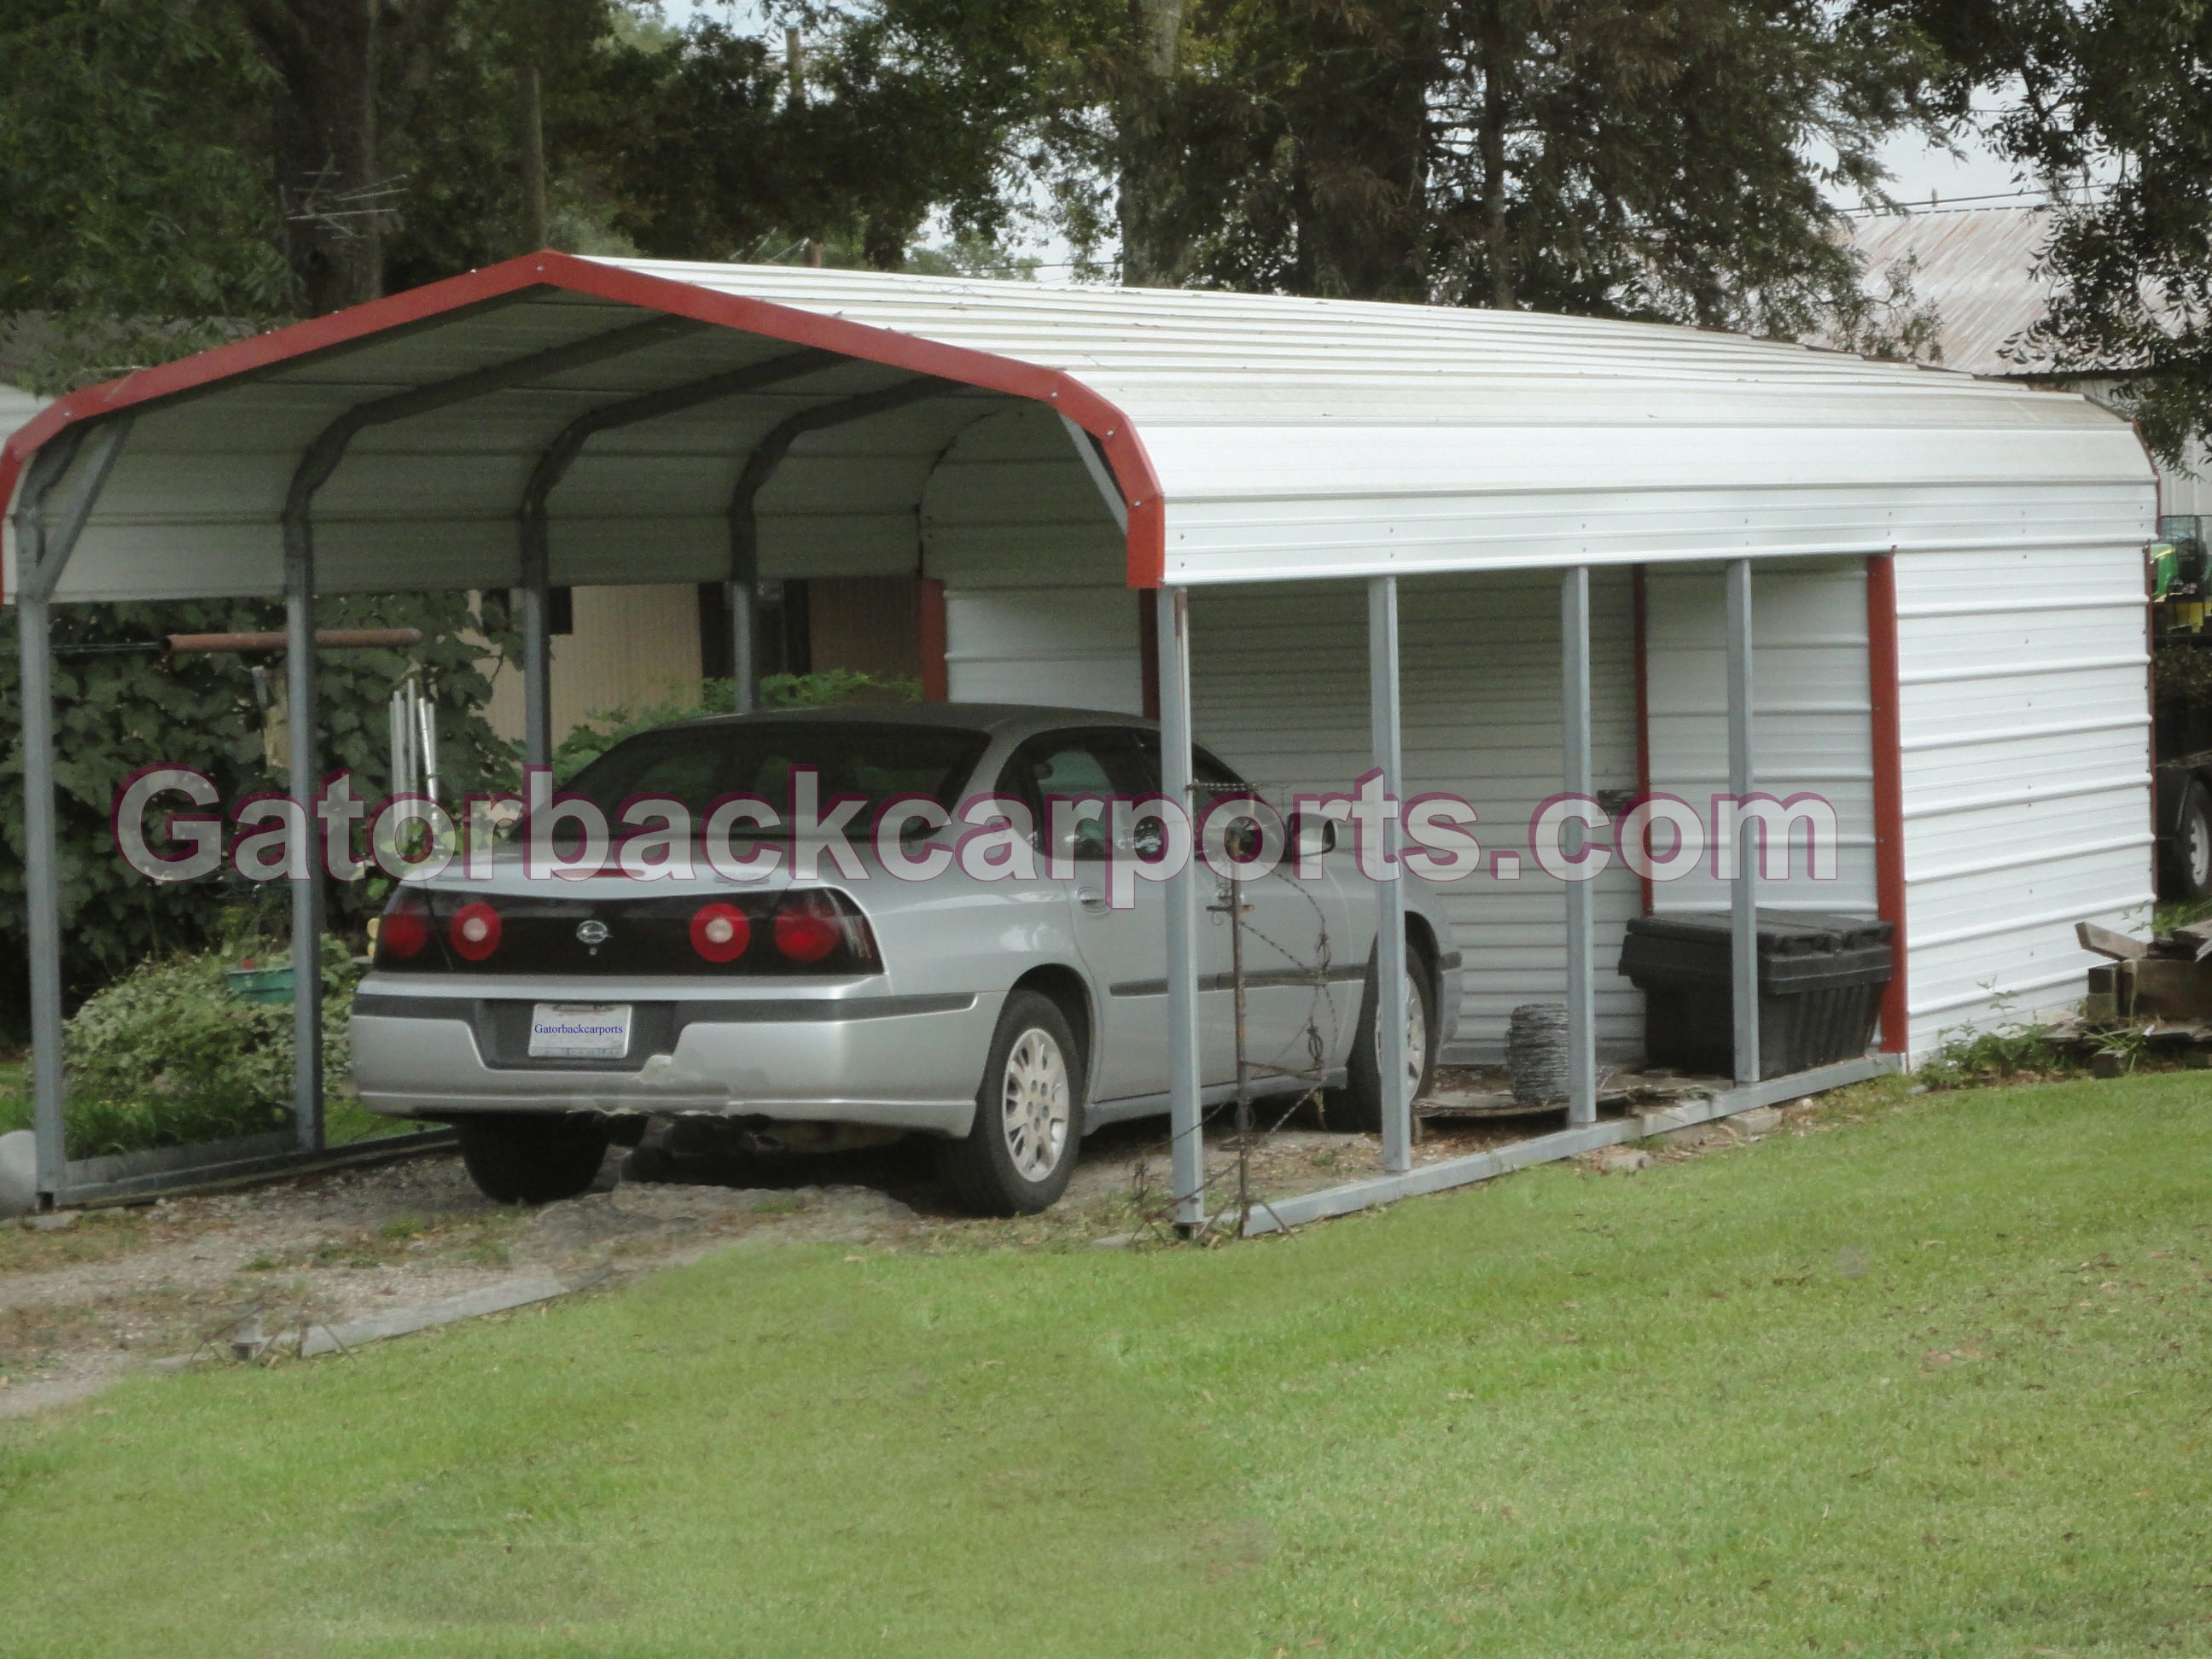 Combo Units (Carports with Storage) - Gatorback CarPorts on windows trim ideas, furniture trim ideas, driveway trim ideas, patio trim ideas, swimming pool trim ideas, flooring trim ideas, den trim ideas, shed trim ideas, landscaping trim ideas, car trim ideas, barn trim ideas, siding trim ideas, garden trim ideas, sliding glass door trim ideas, storage trim ideas, yard trim ideas, bedroom trim ideas, roof trim ideas, stairs trim ideas, pergola trim ideas,